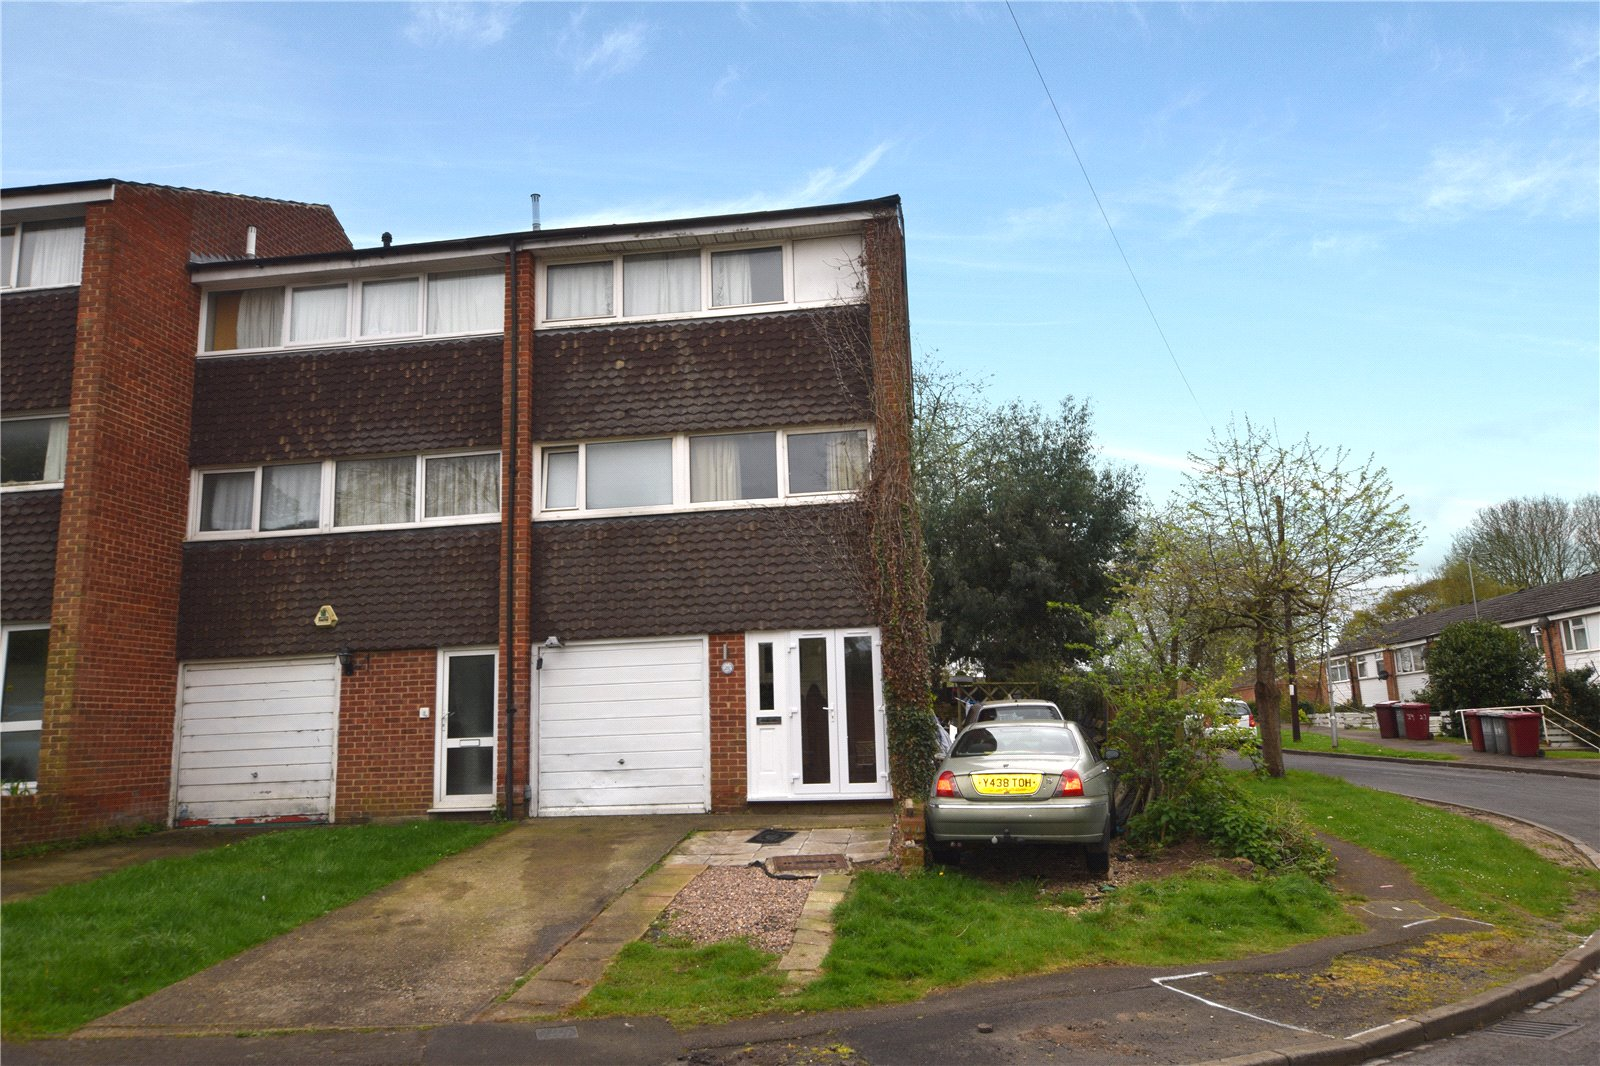 4 Bedrooms End Of Terrace House for sale in Hillbrow, Reading, Berkshire, RG2